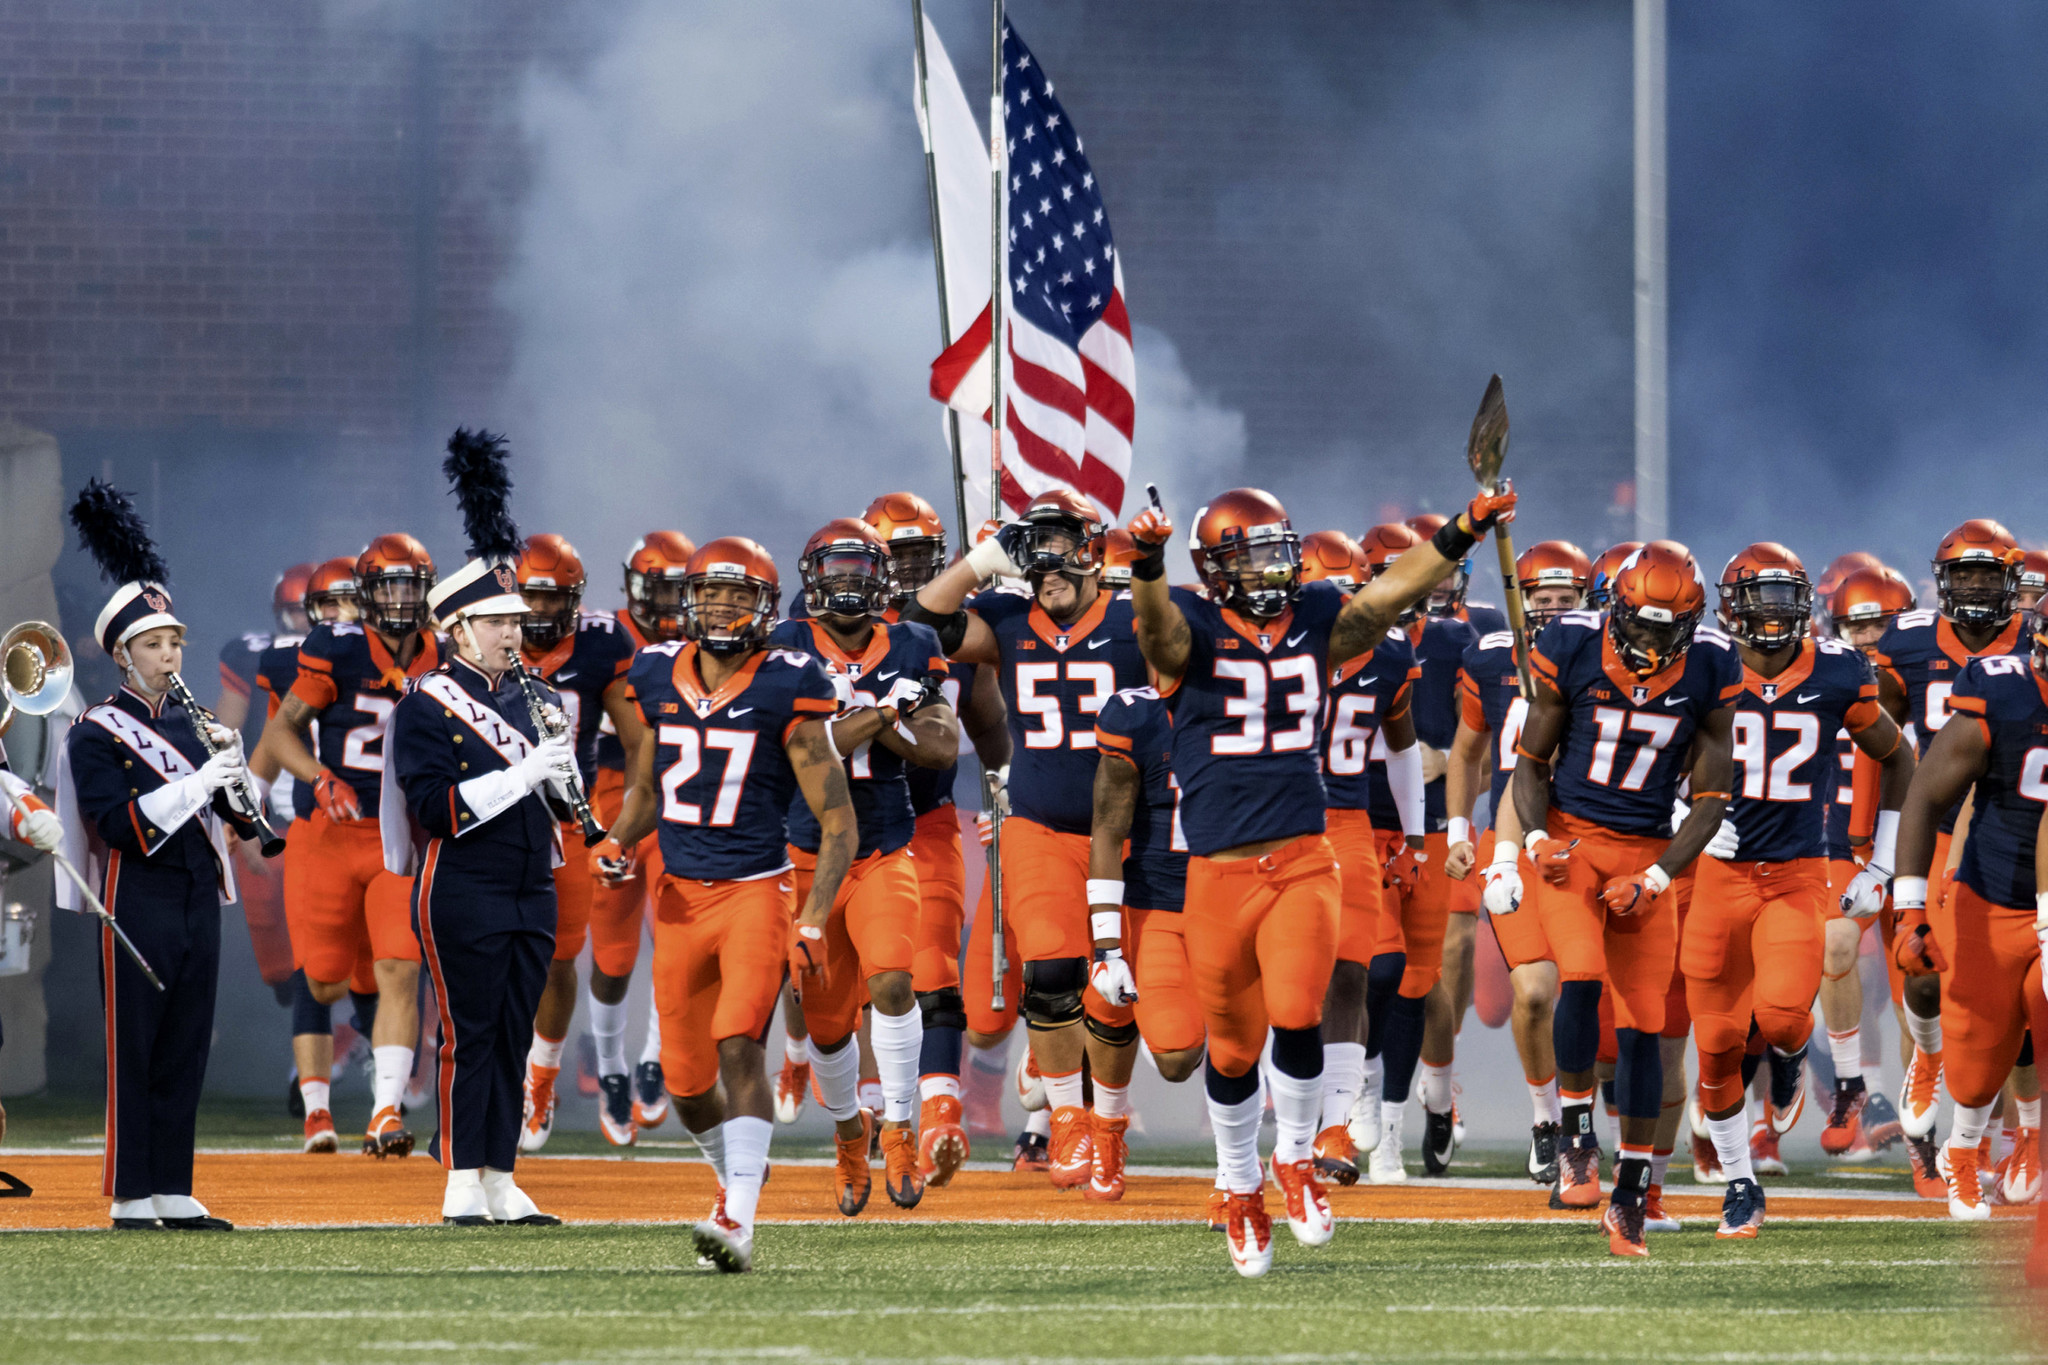 Ct-illinois-usf-preview-spt-0915-20170914